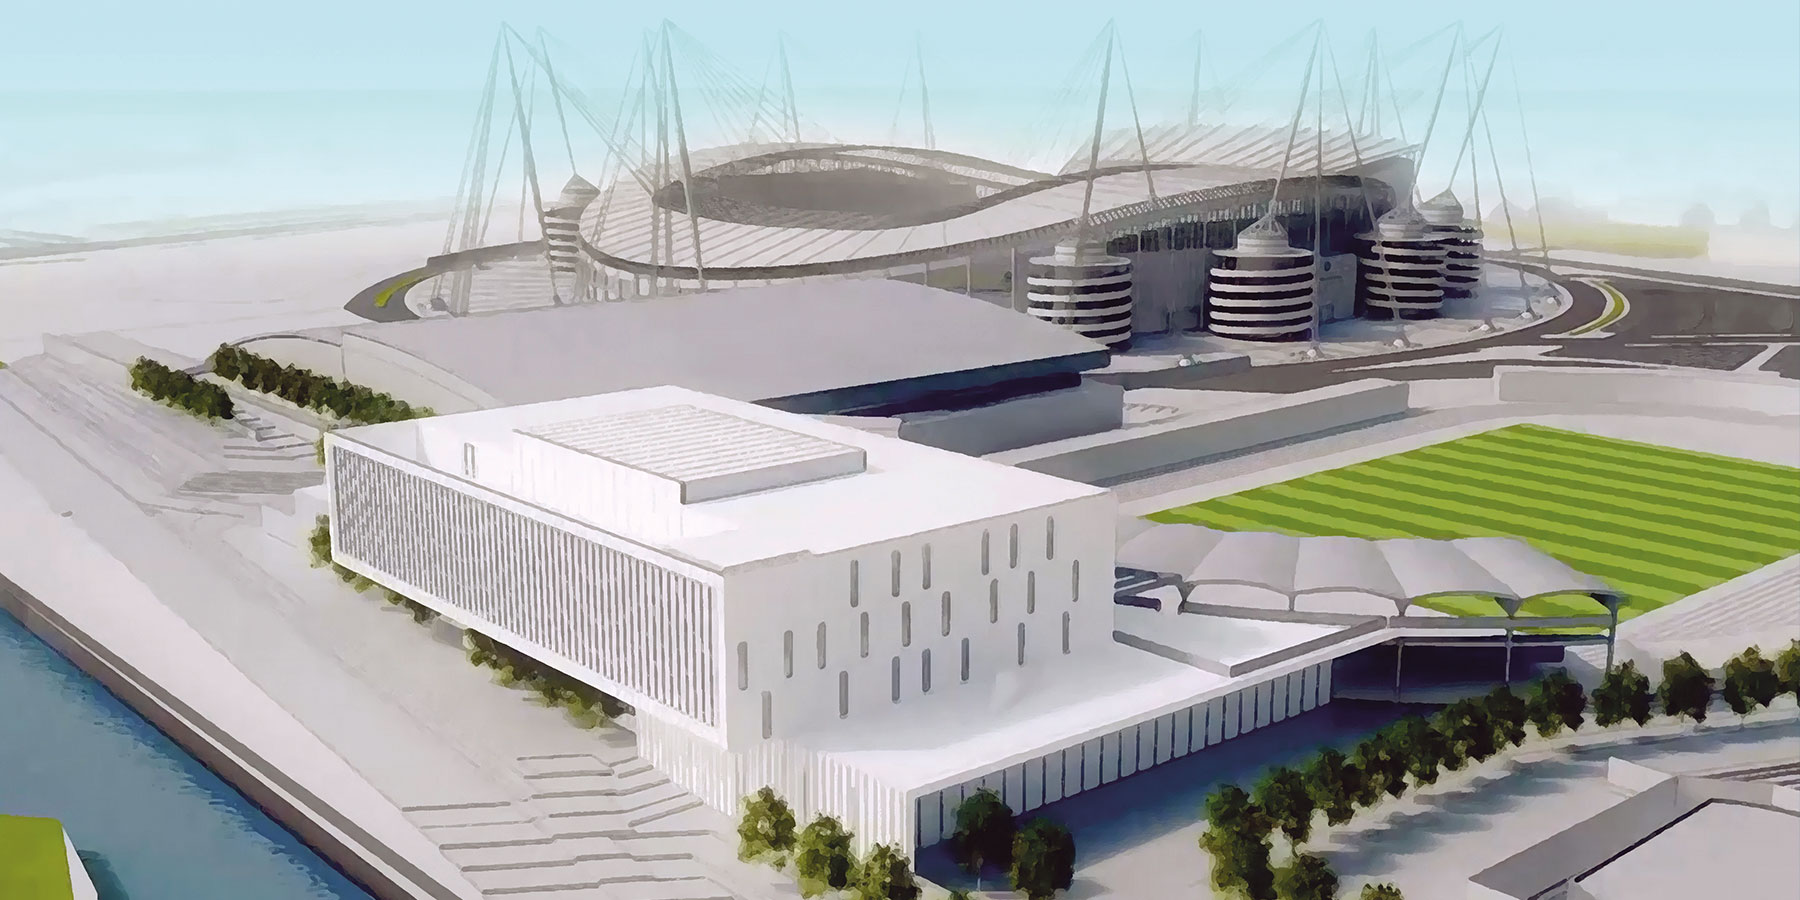 An artist's impression of Manchester Metropolitan's proposed Institute of Sport at the Etihad Campus